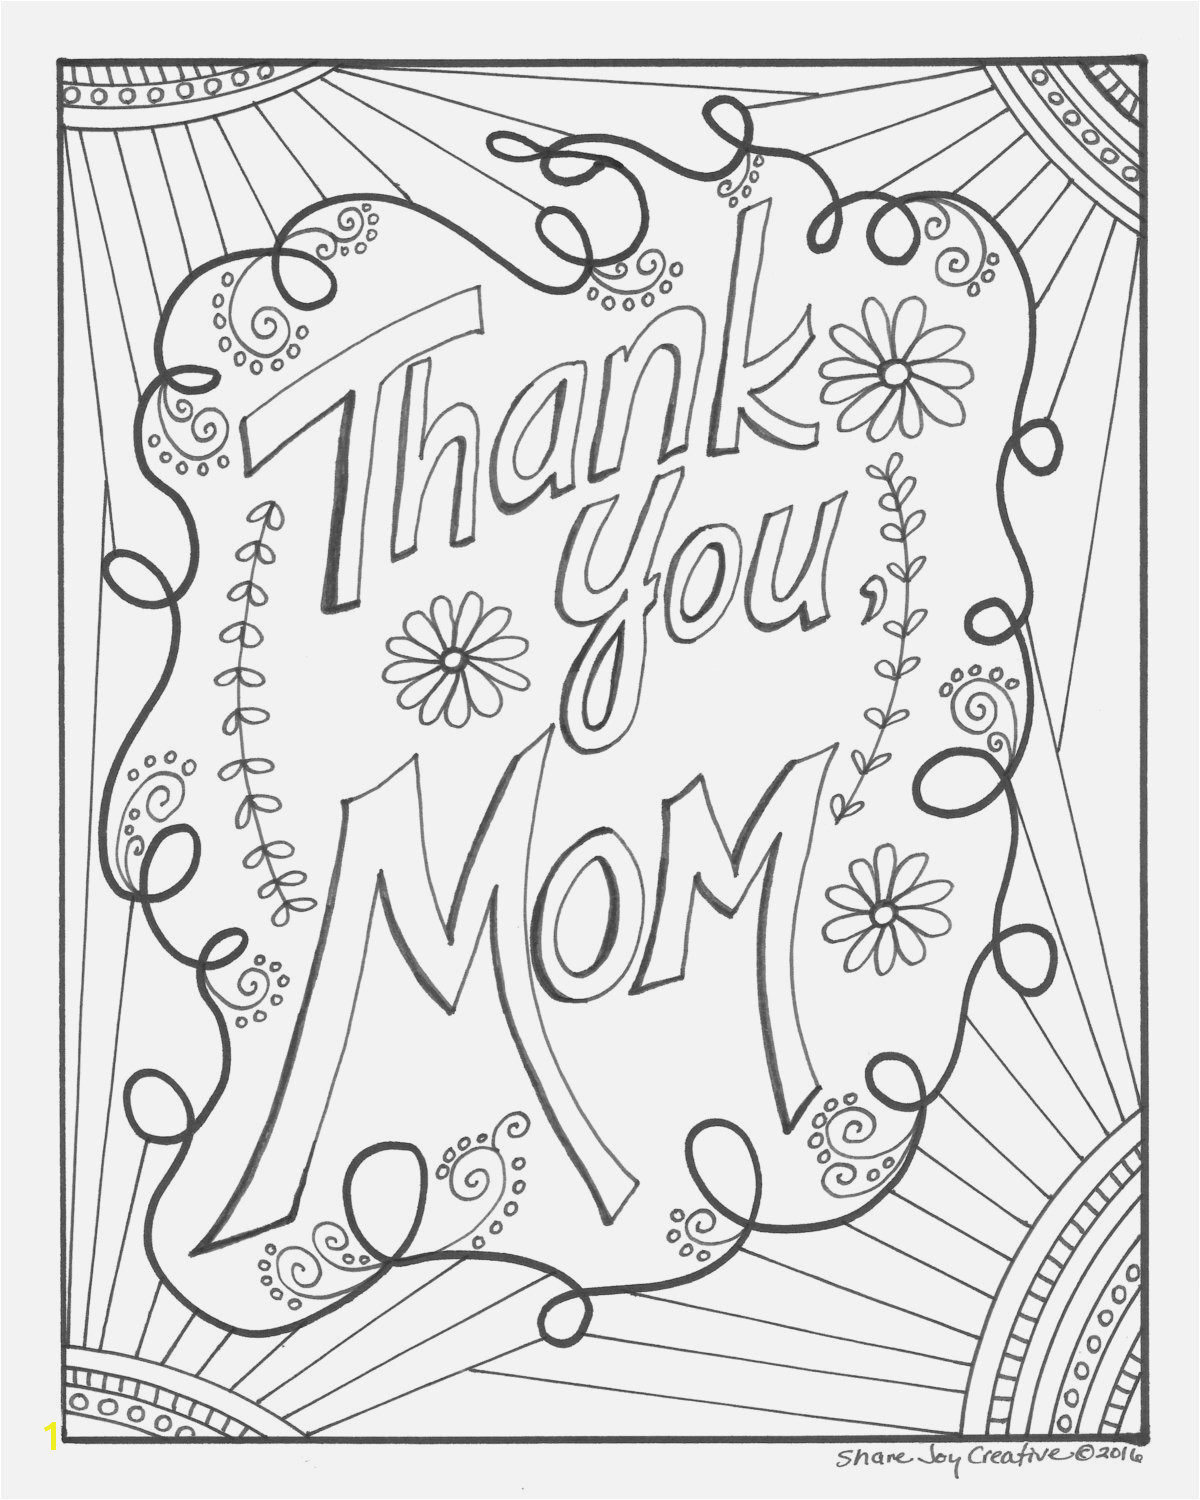 Friendship Coloring Pages Free Download Thank You Coloring Pages Gallery thephotosync Friendship Coloring Pages Elegant